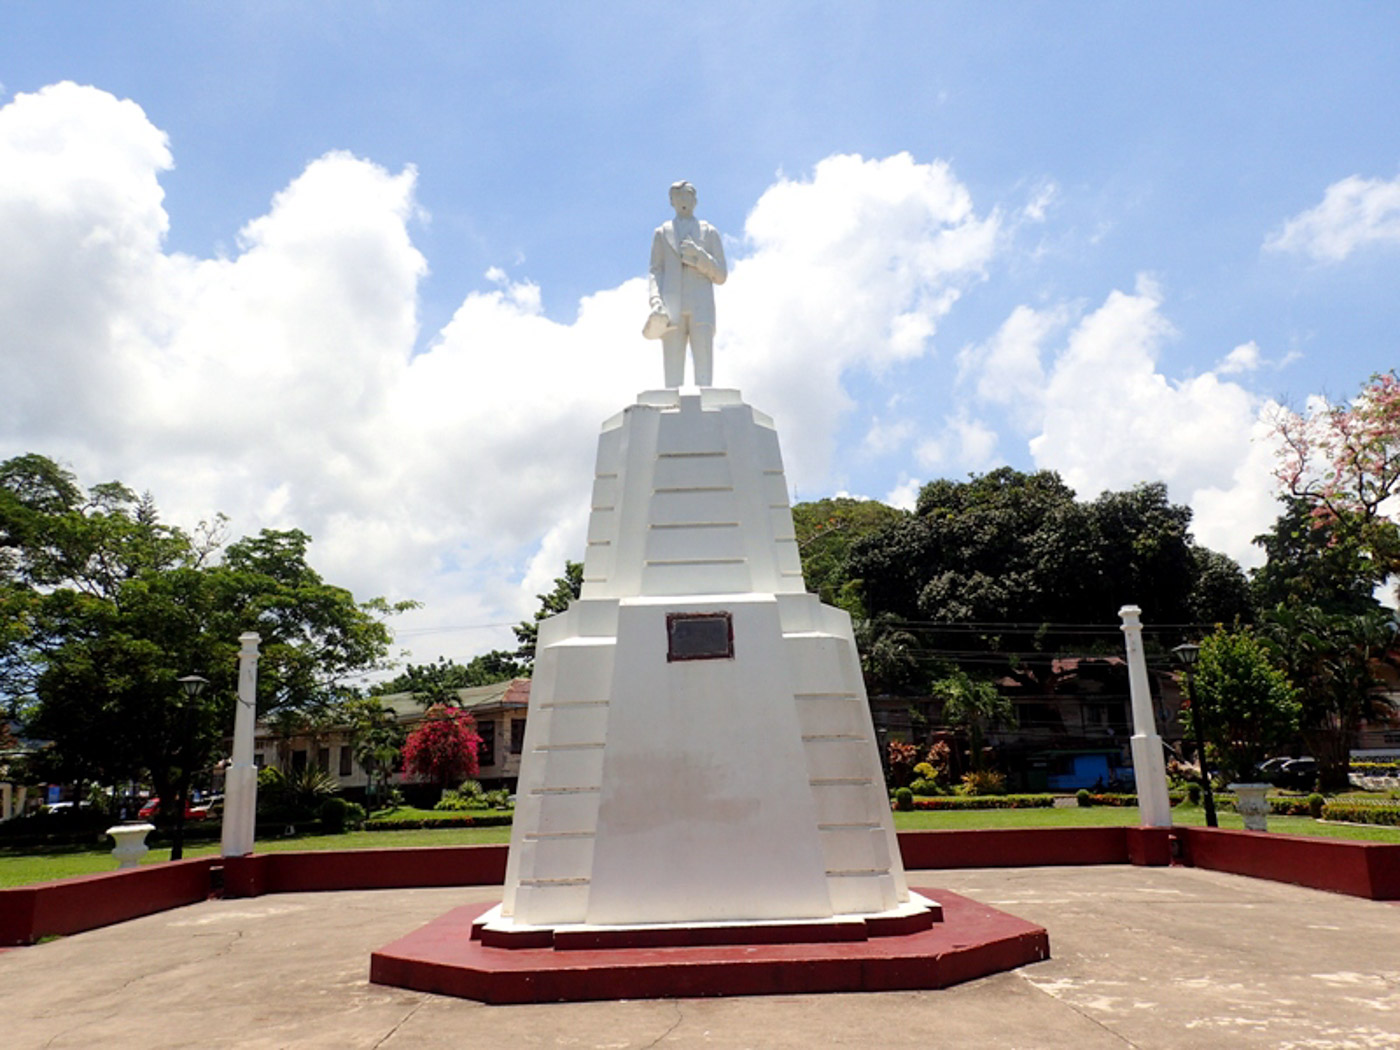 RIZAL'S DEDICATION. On Rizal's monument at the town plaza are his words of determination on doing all he can for Dapitan.